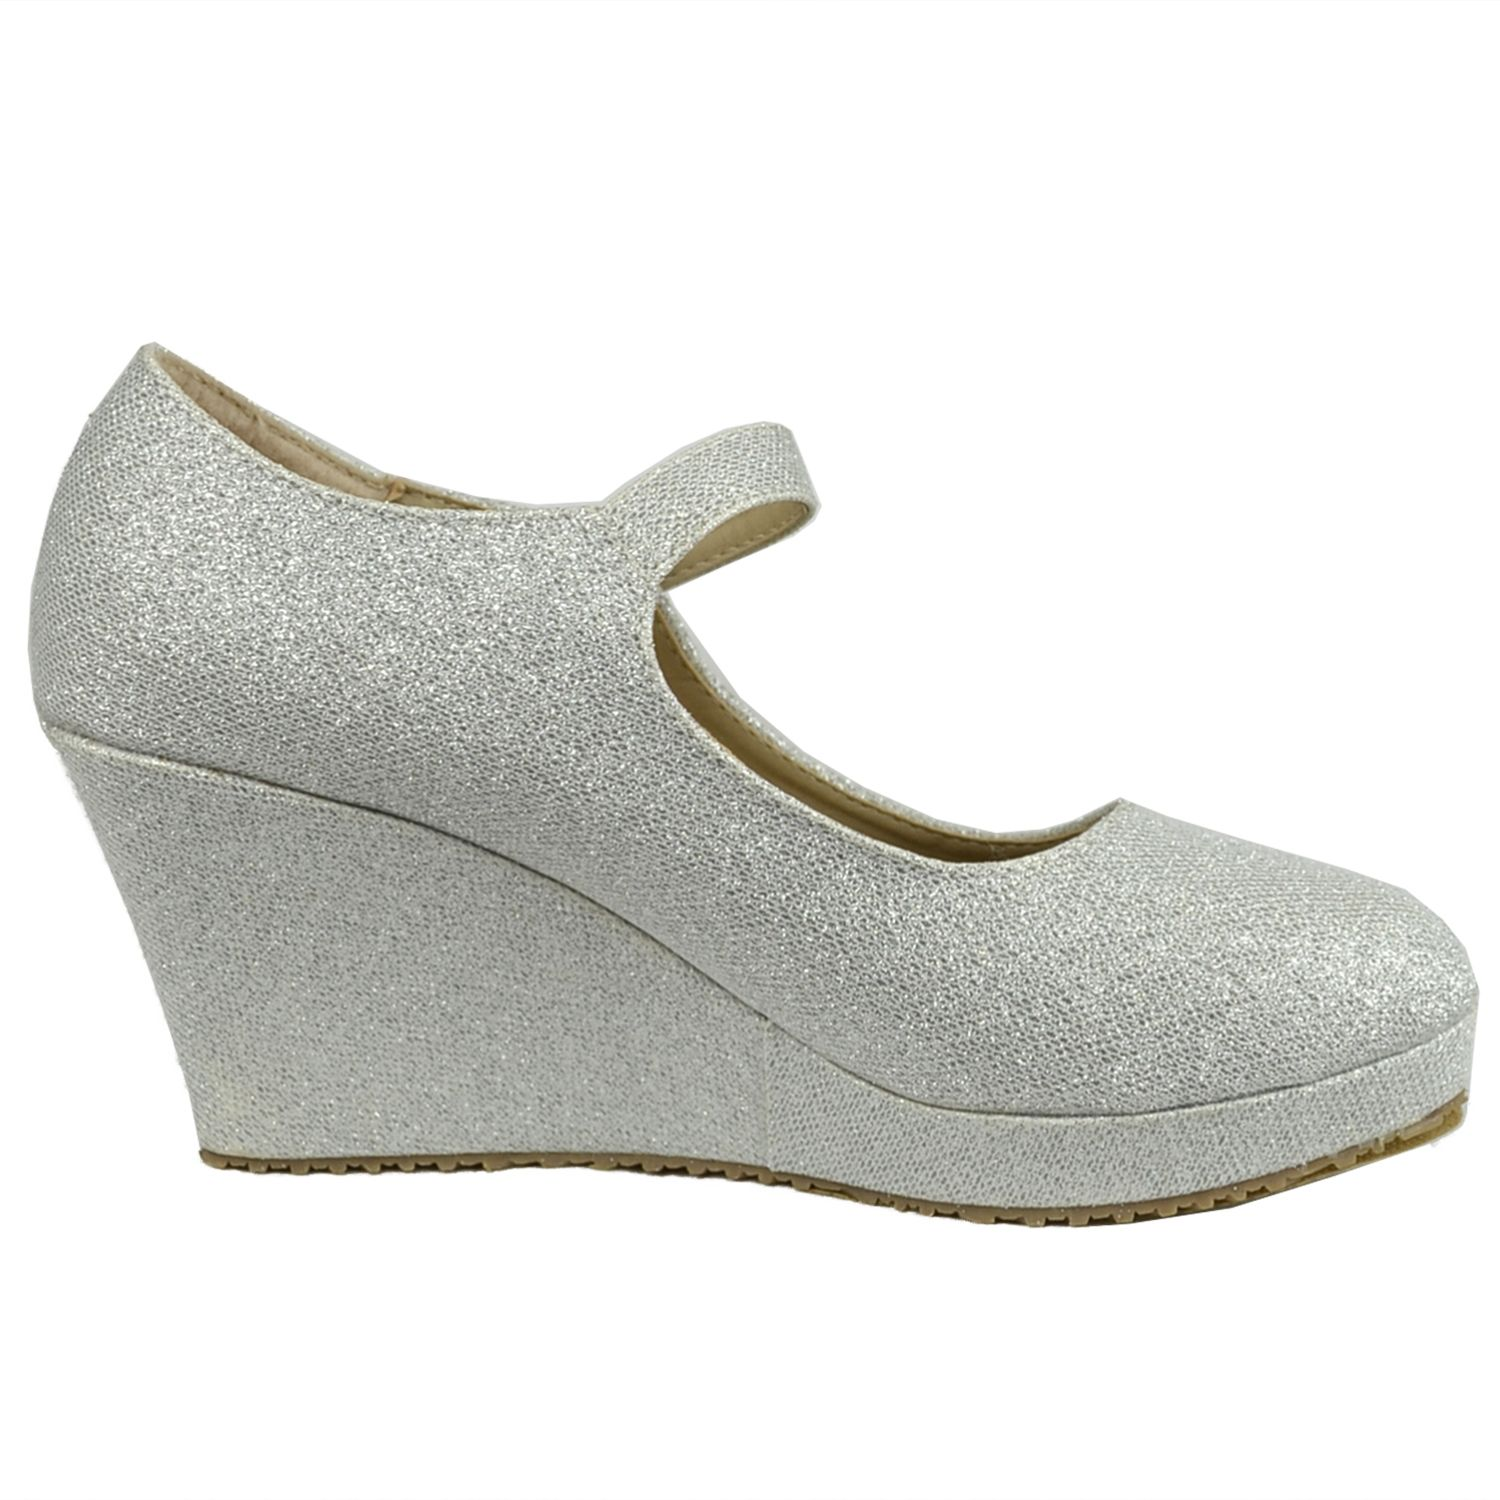 06c44a0f636 Womens Casual Platform Shoes Ankle Strap Closed Toe Mary Jane Glitter  Accent Wedges Silver